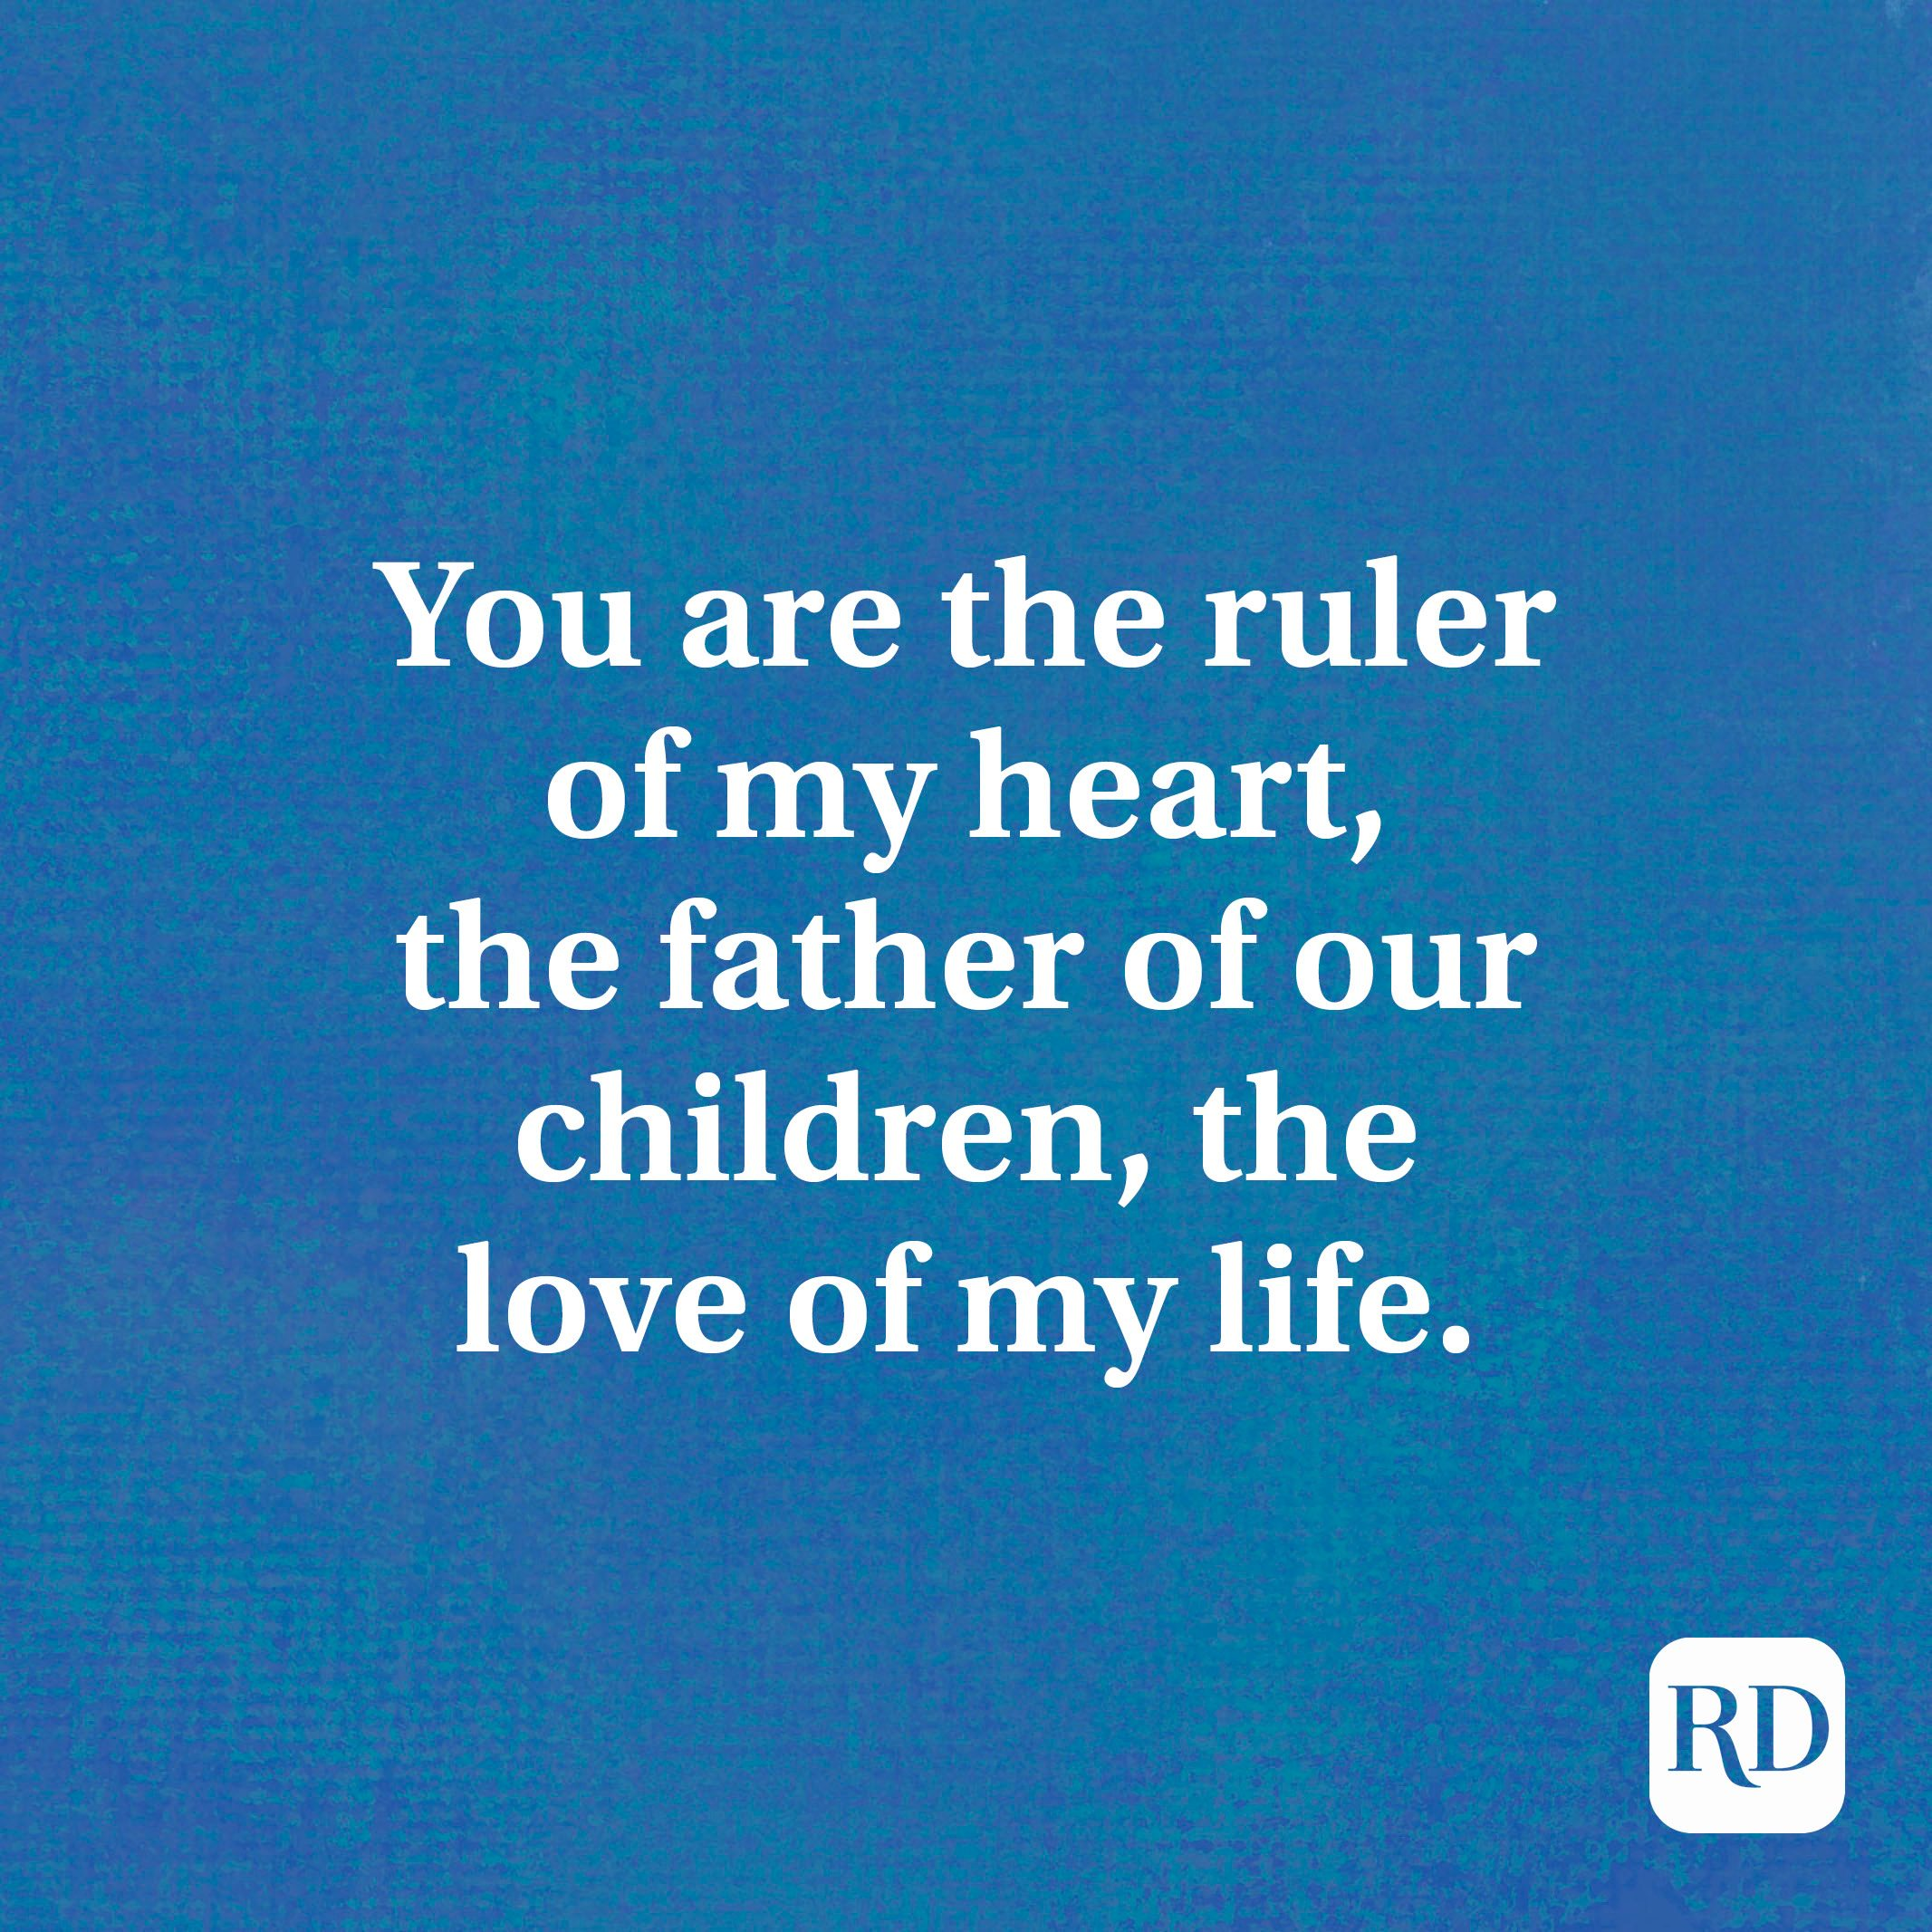 You are the ruler of my heart, the father of our children, the love of my life.